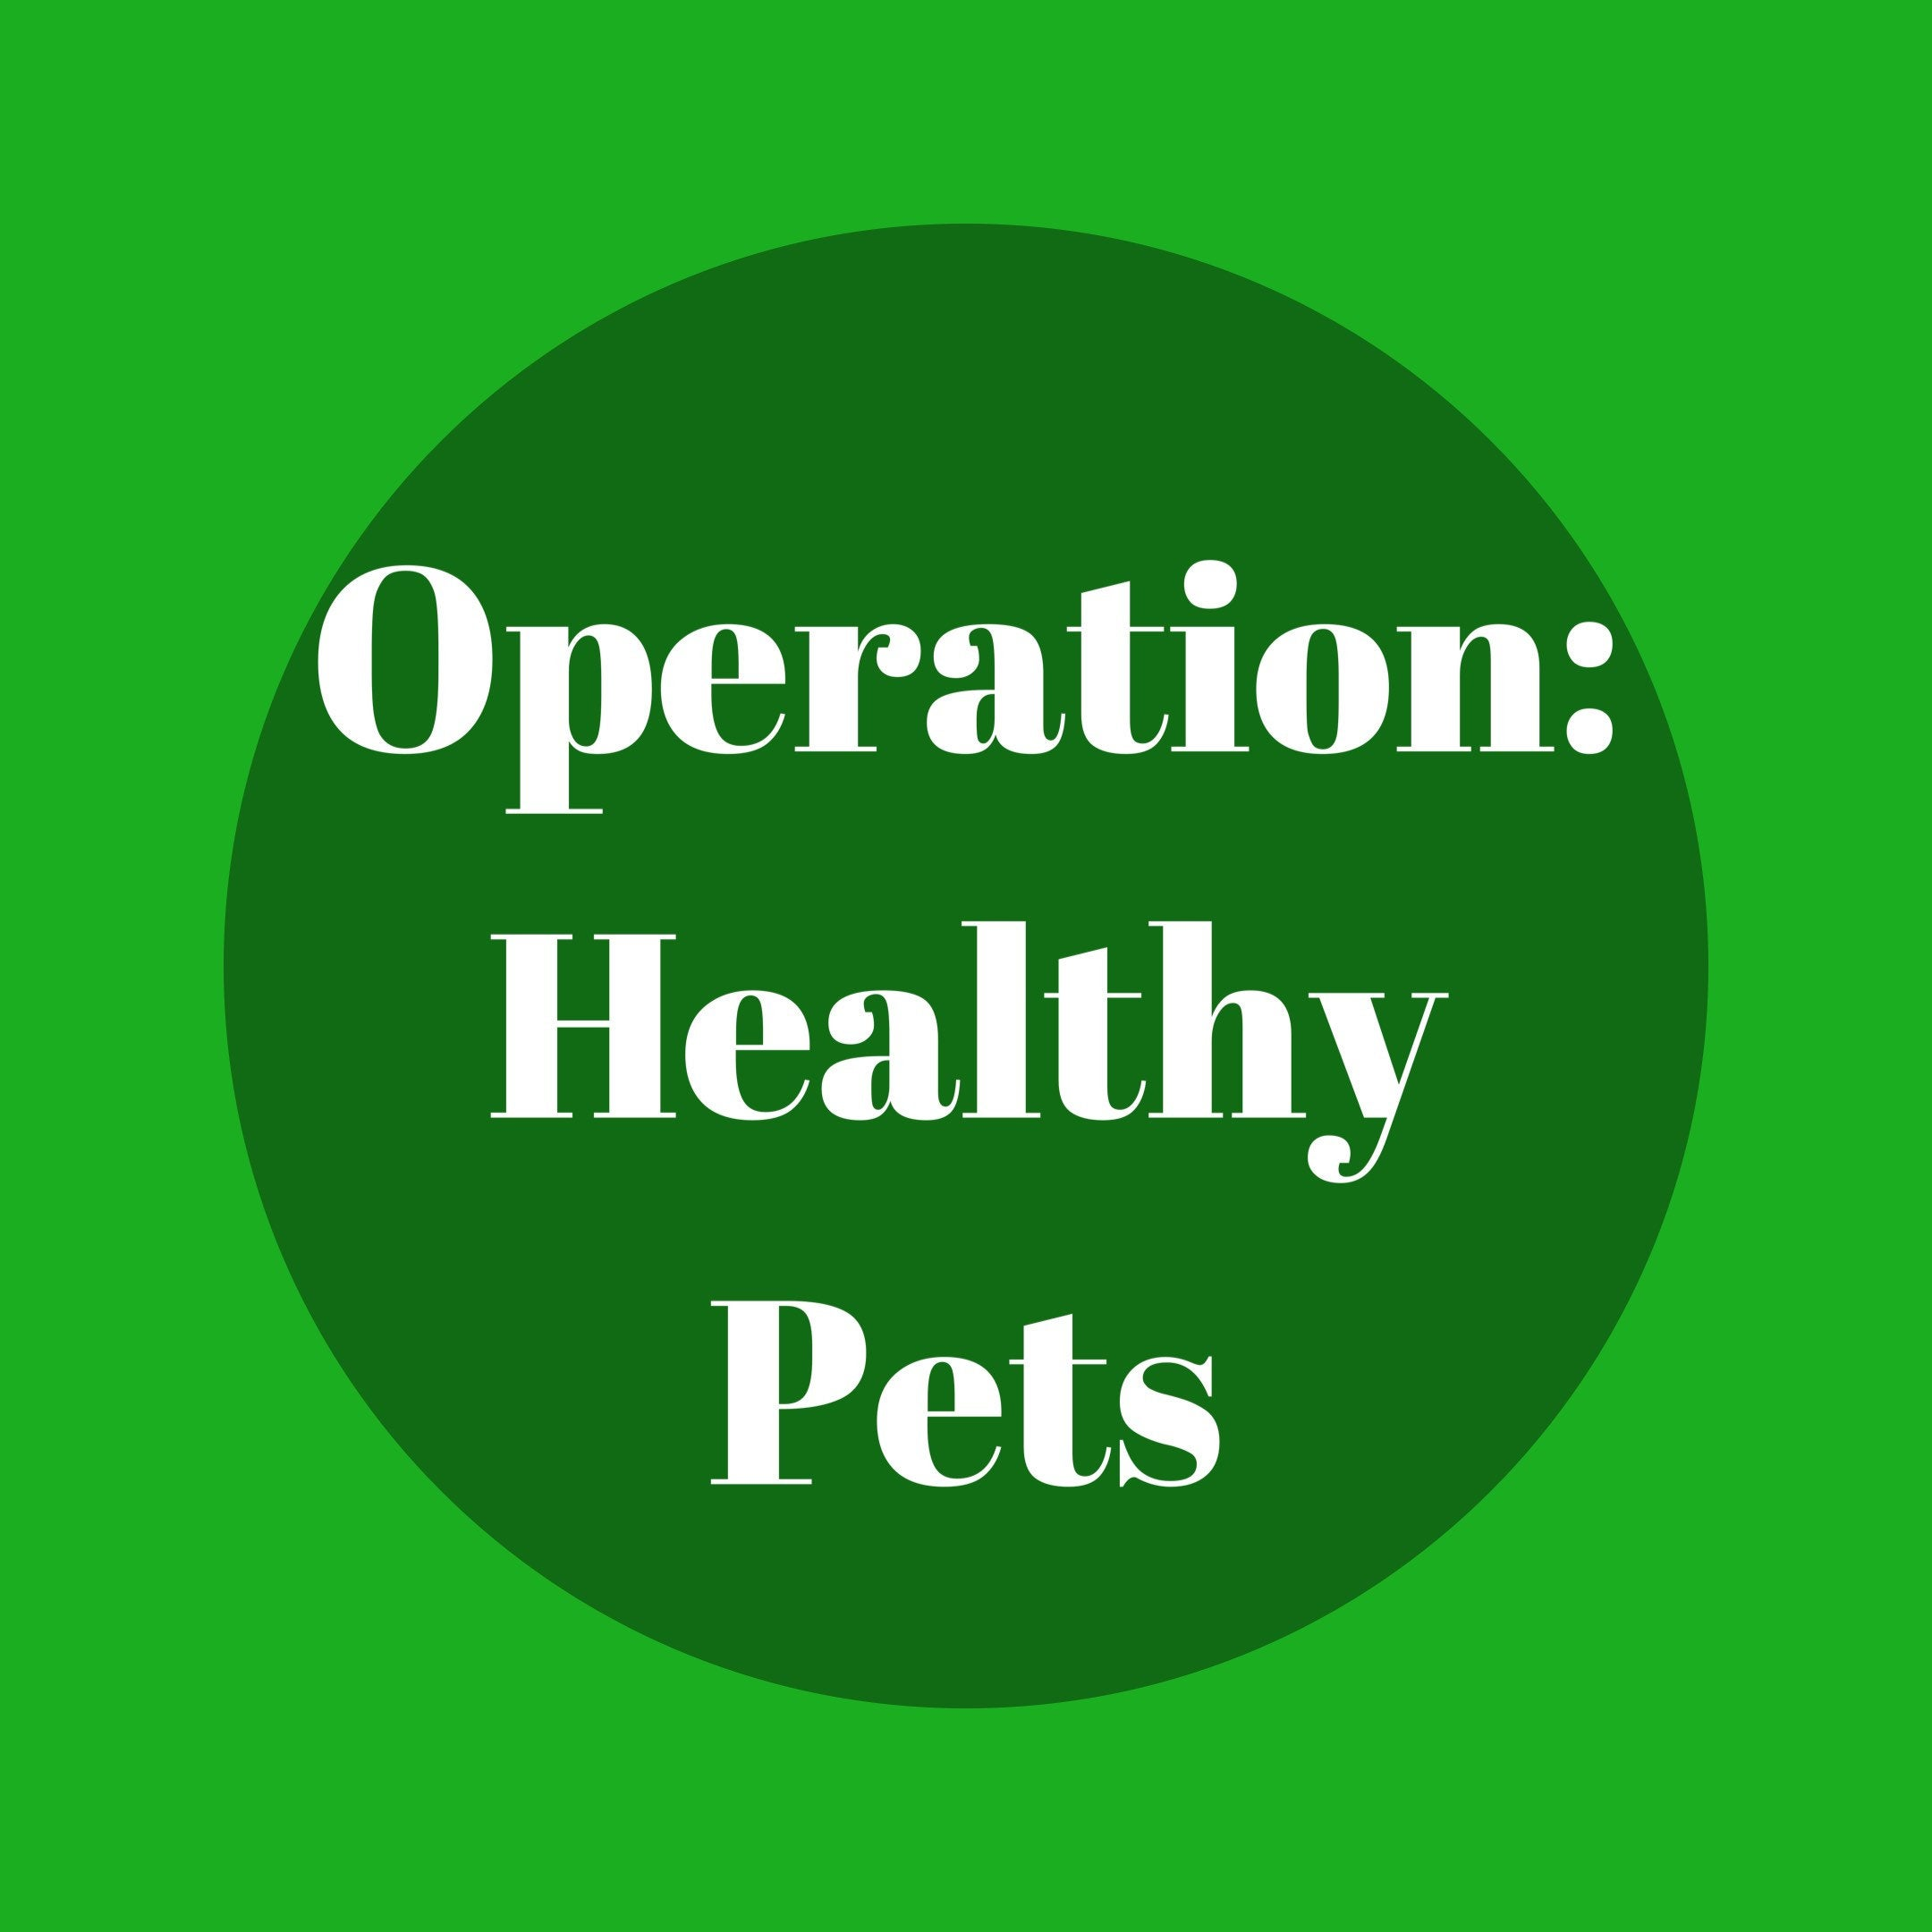 Operation: Healthy Pets